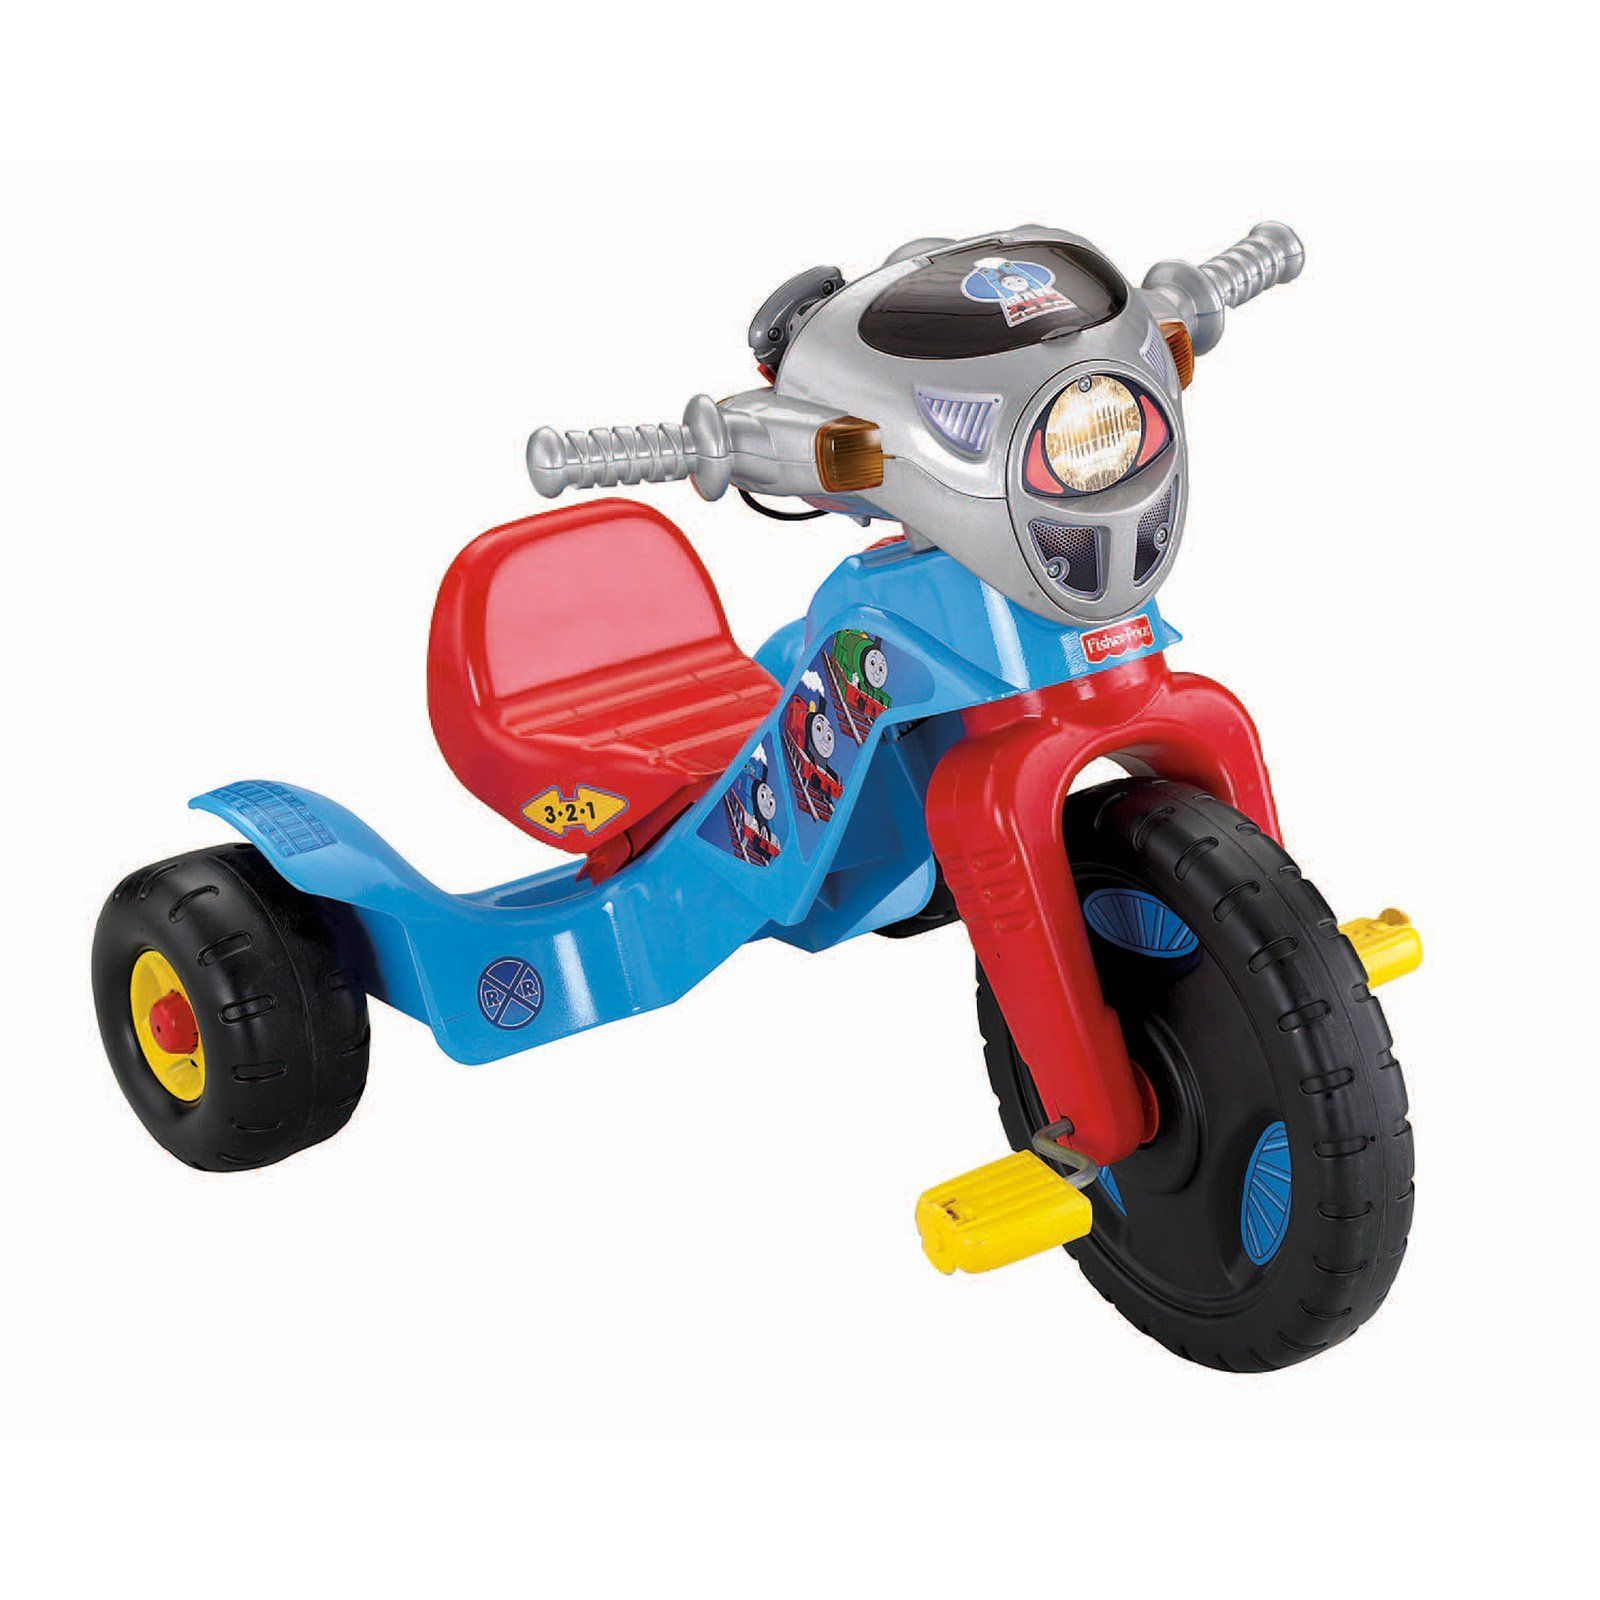 c4db9ac7a78 Fisher-Price Thomas the Train Big Wheel Riding Toy | from hayneedle.com